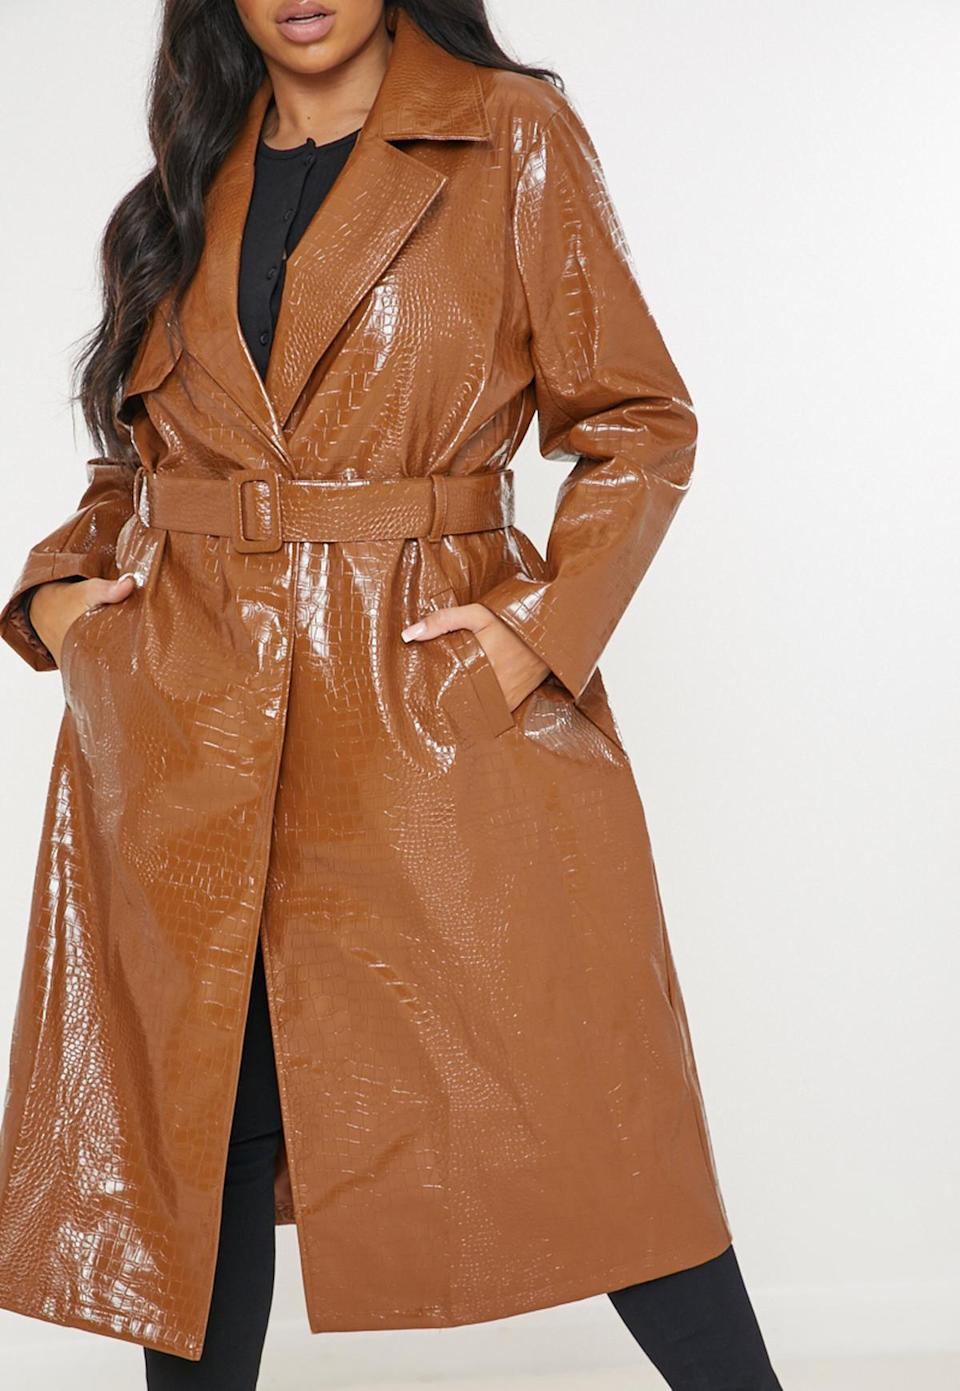 """<br><br><strong>Missguided</strong> Plus Size Brown Croc Faux Leather Trench Coat, $, available at <a href=""""https://www.missguided.co.uk/plus-size-brown-croc-faux-leather-trench-coat-10209484"""" rel=""""nofollow noopener"""" target=""""_blank"""" data-ylk=""""slk:Missguided"""" class=""""link rapid-noclick-resp"""">Missguided</a>"""